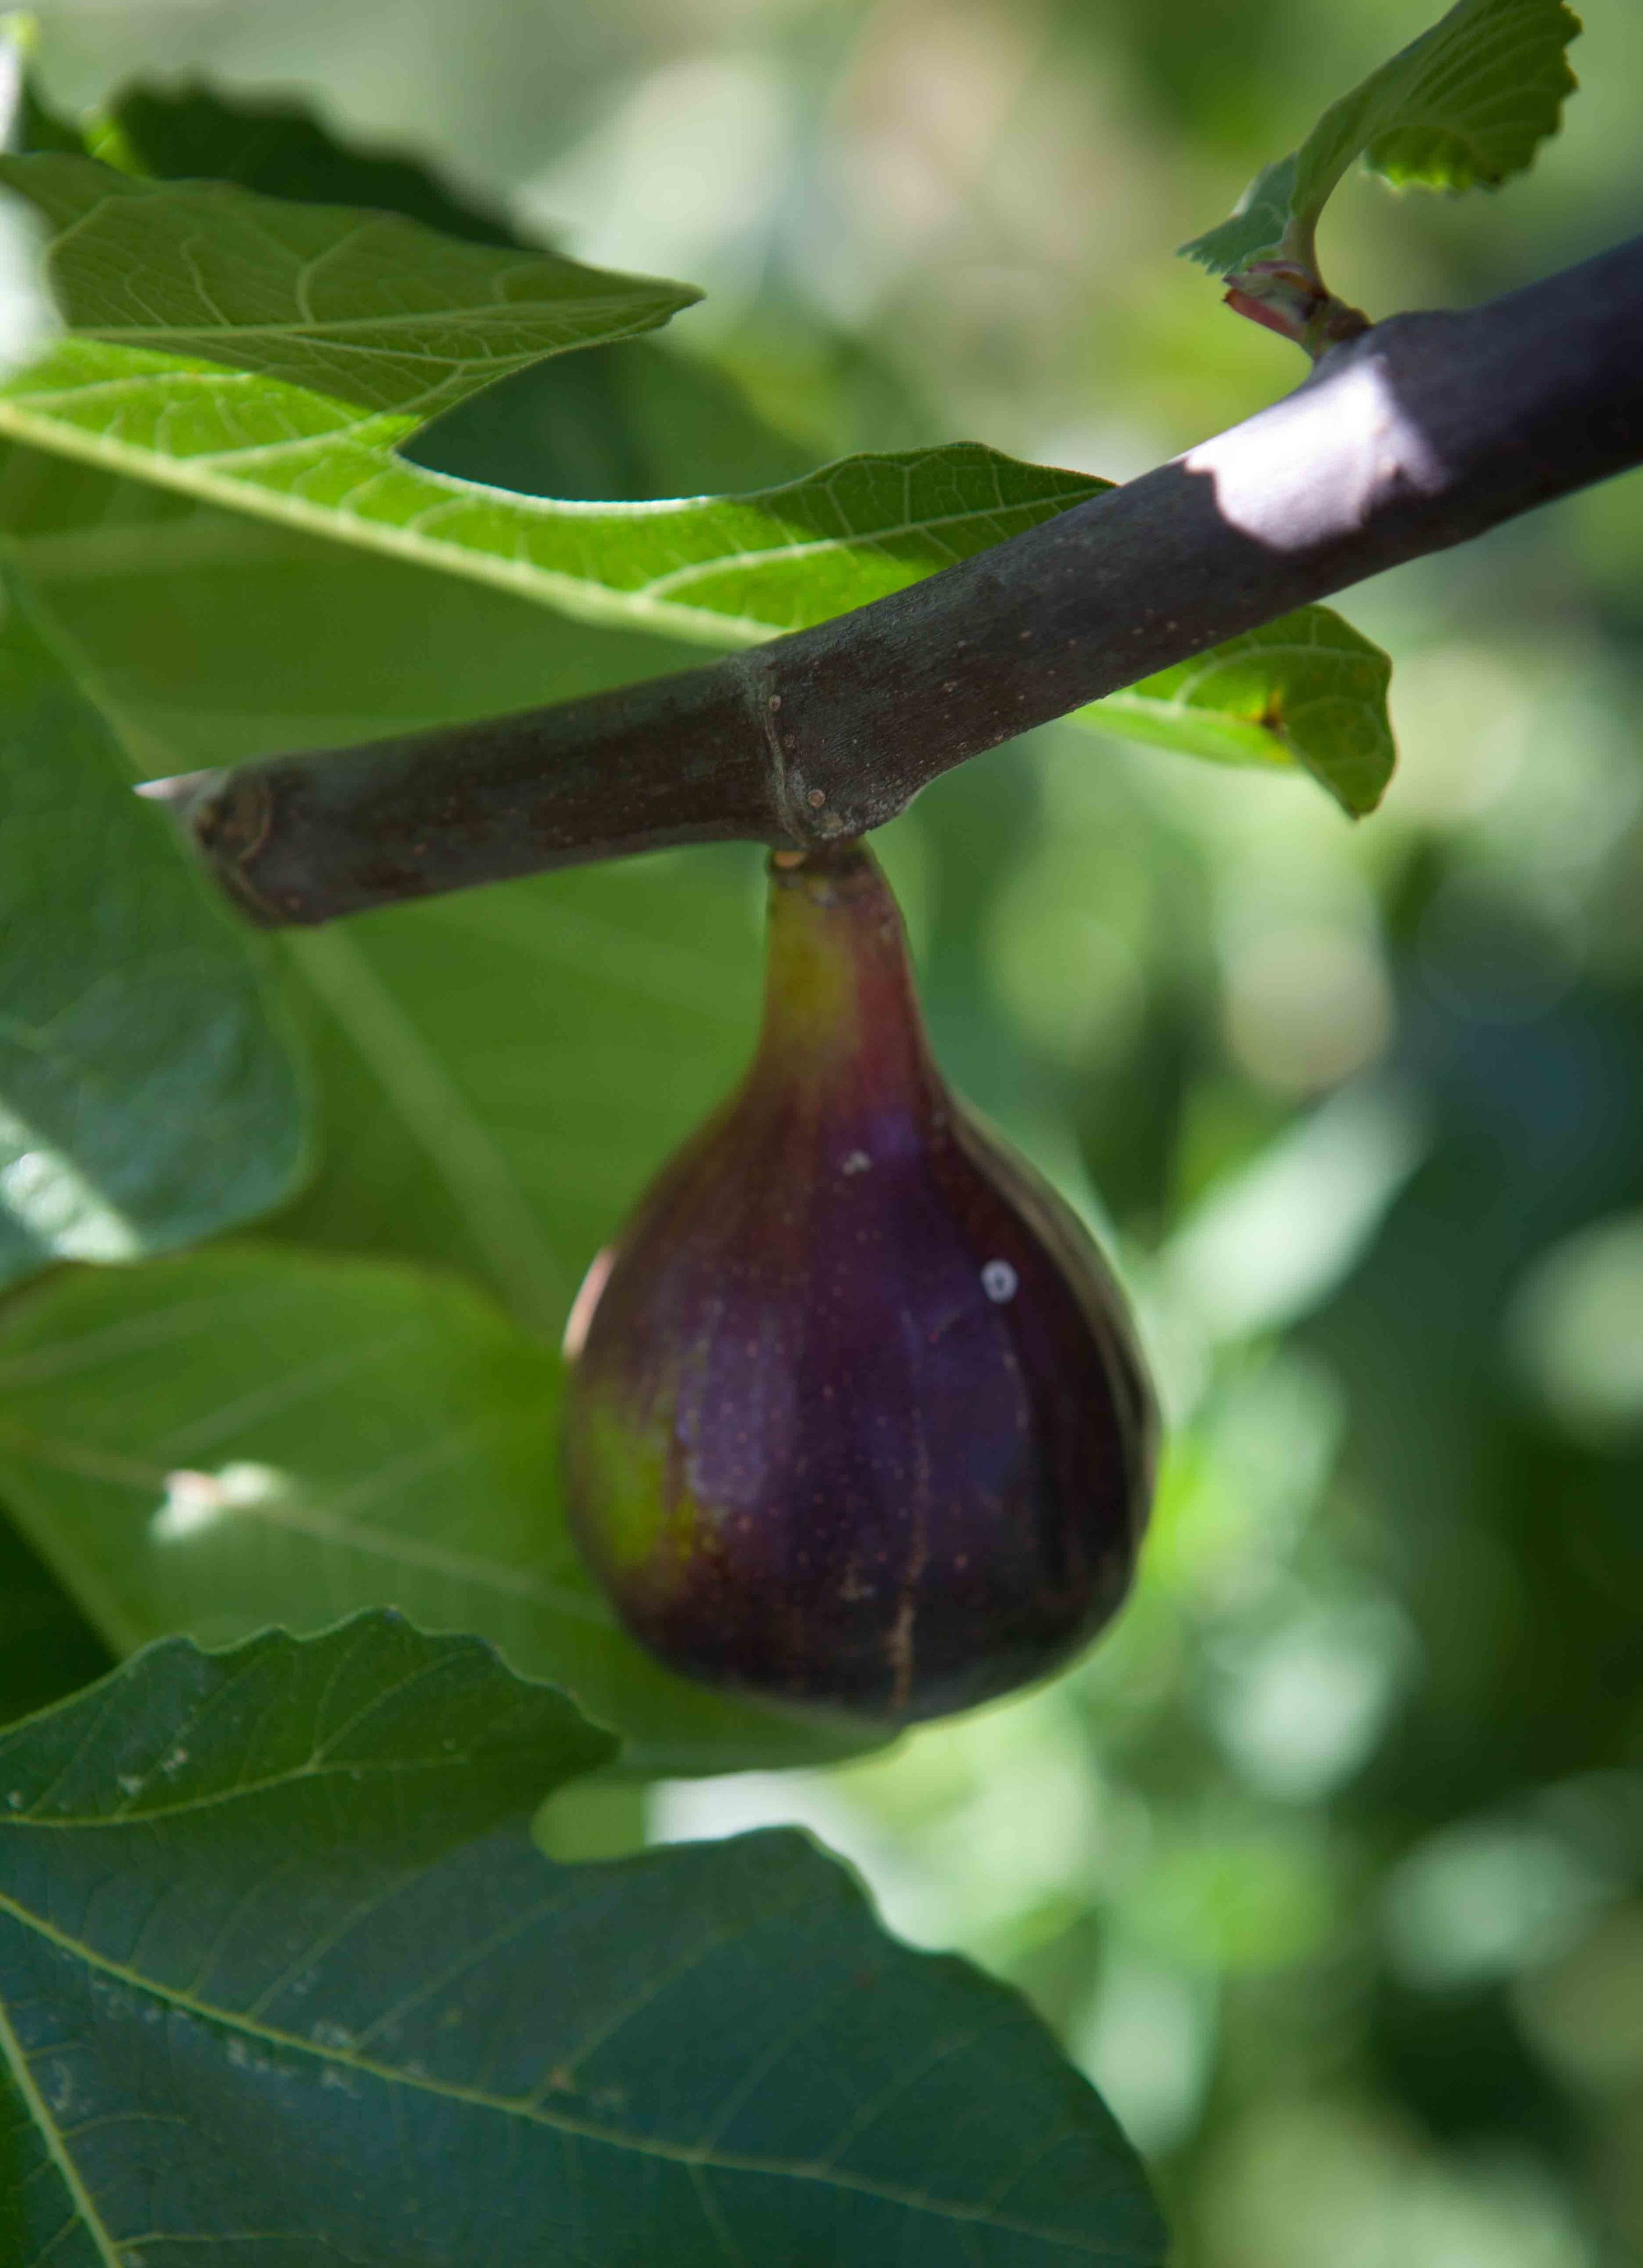 Figs at Finca Buenvino self-catering cottages Huelva